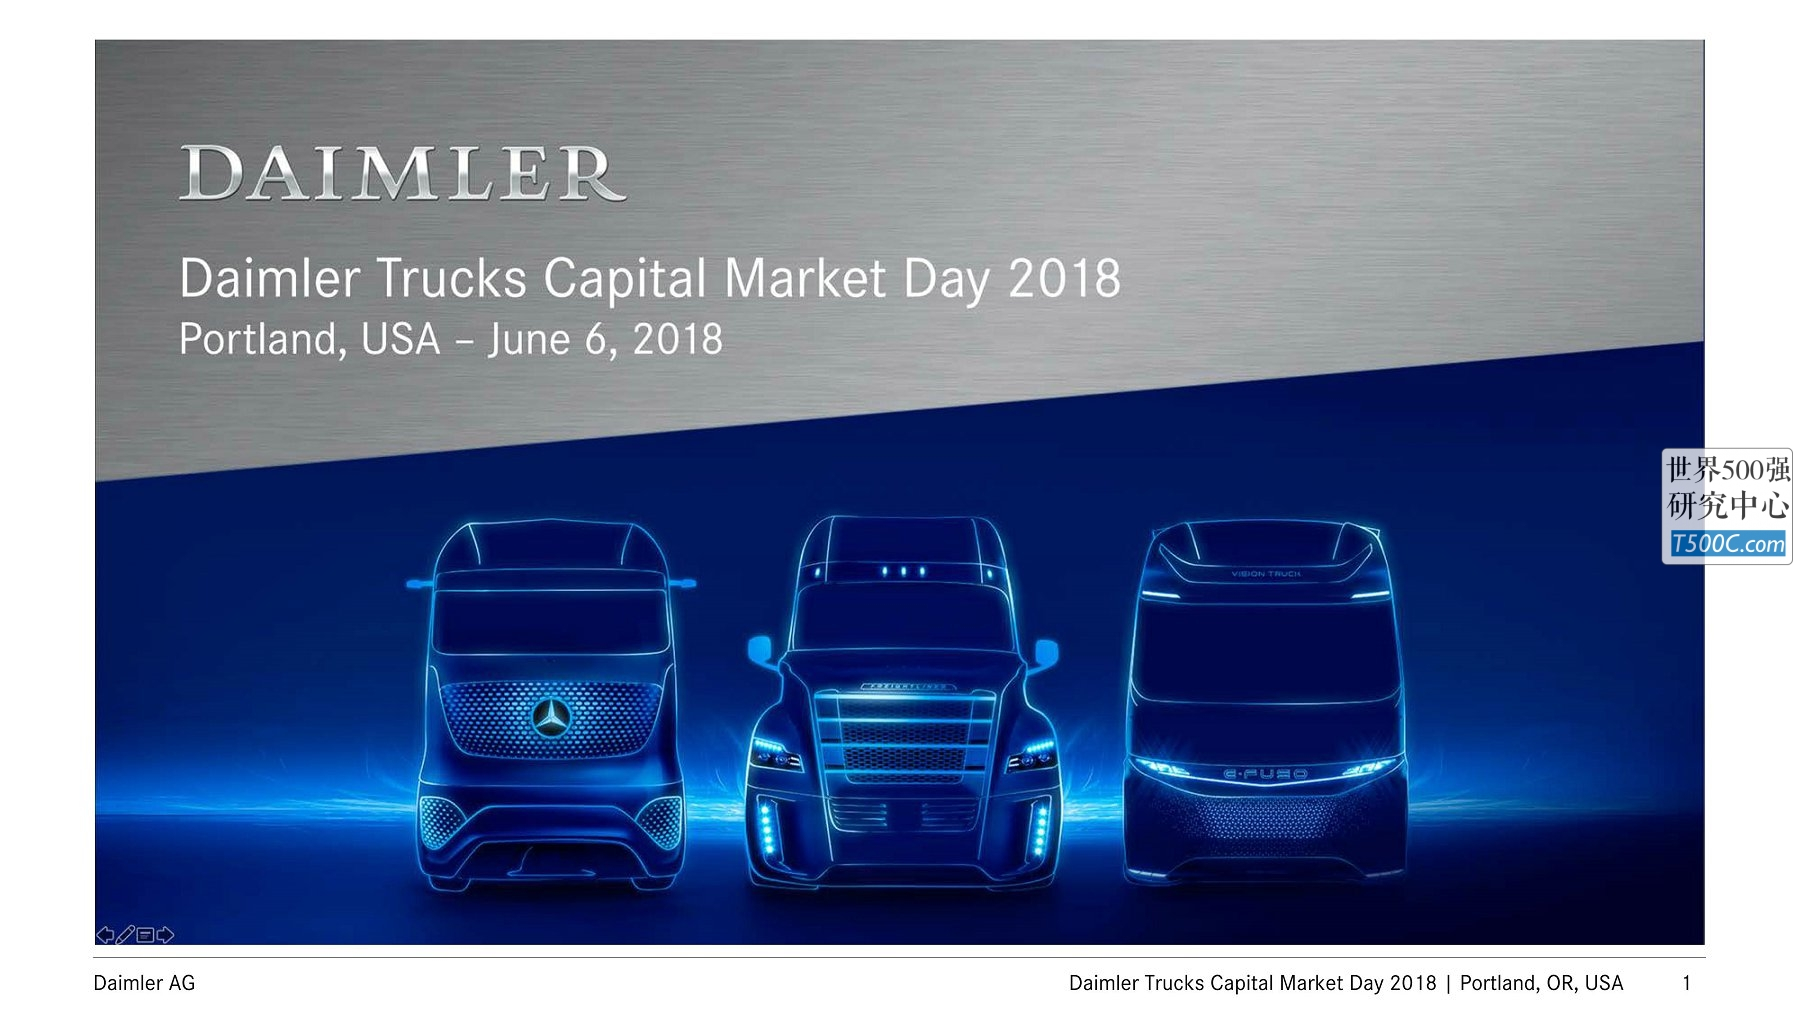 戴姆勒汽车Daimler_PPT样式_2018_T500C.com_Capital Market Day technology update.pdf